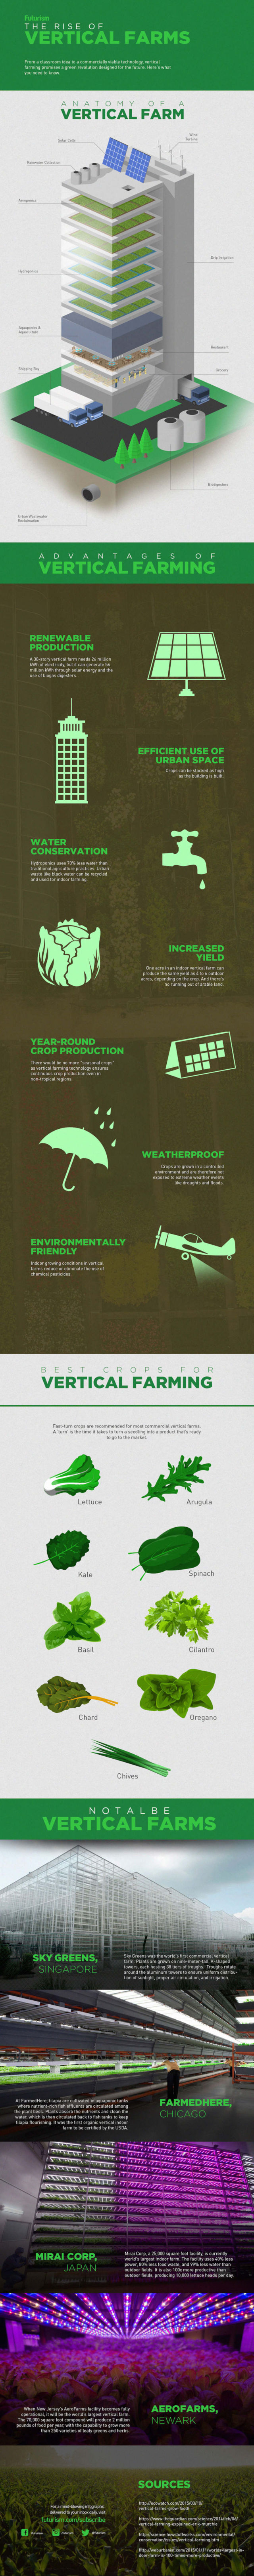 The rise of Vertical Farms - infographic